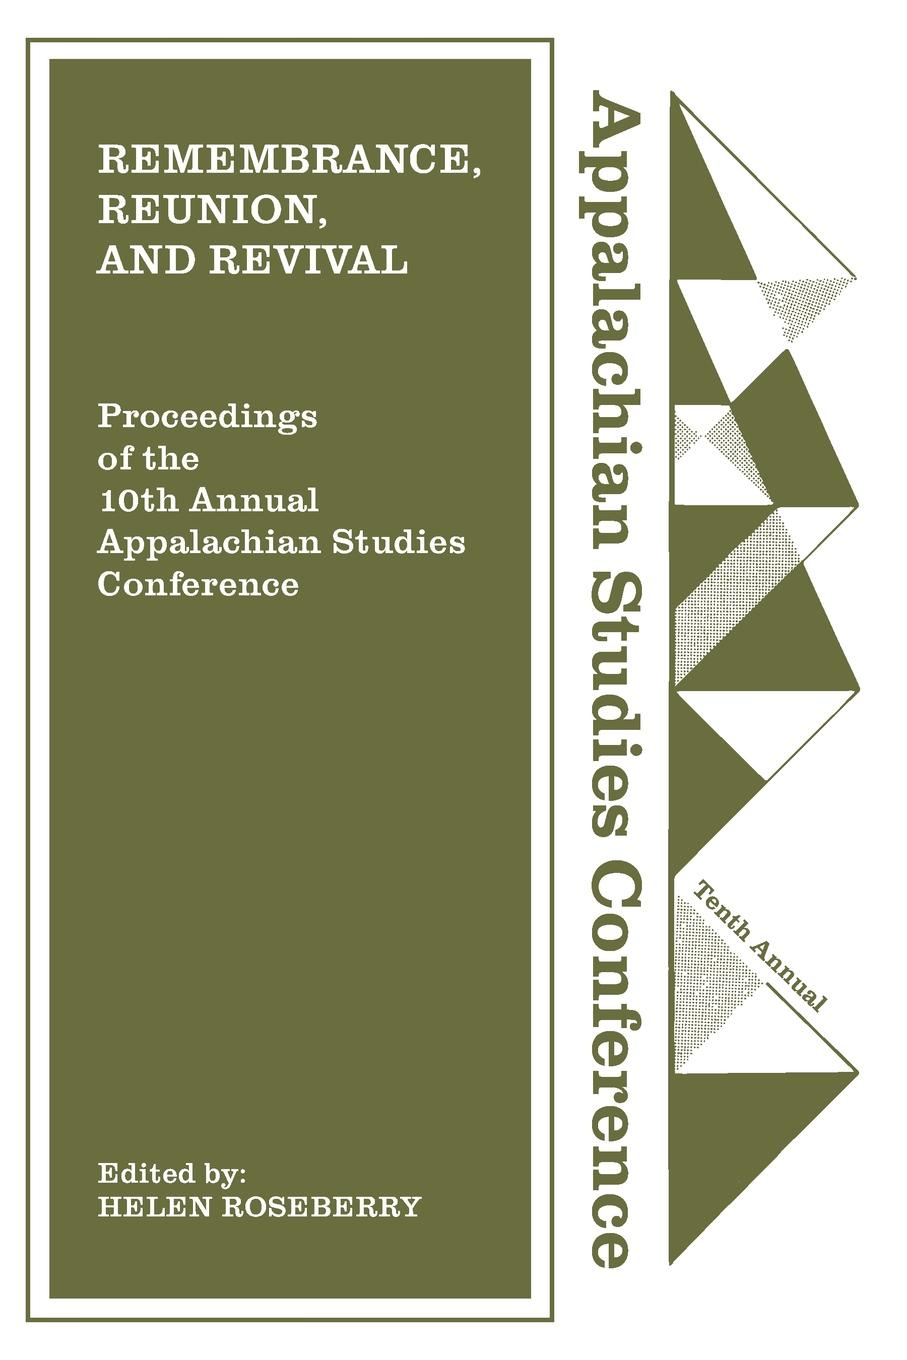 Remembrance, Reunion, and Revival. Celebrating a Decade of Appalachian Studies недорго, оригинальная цена